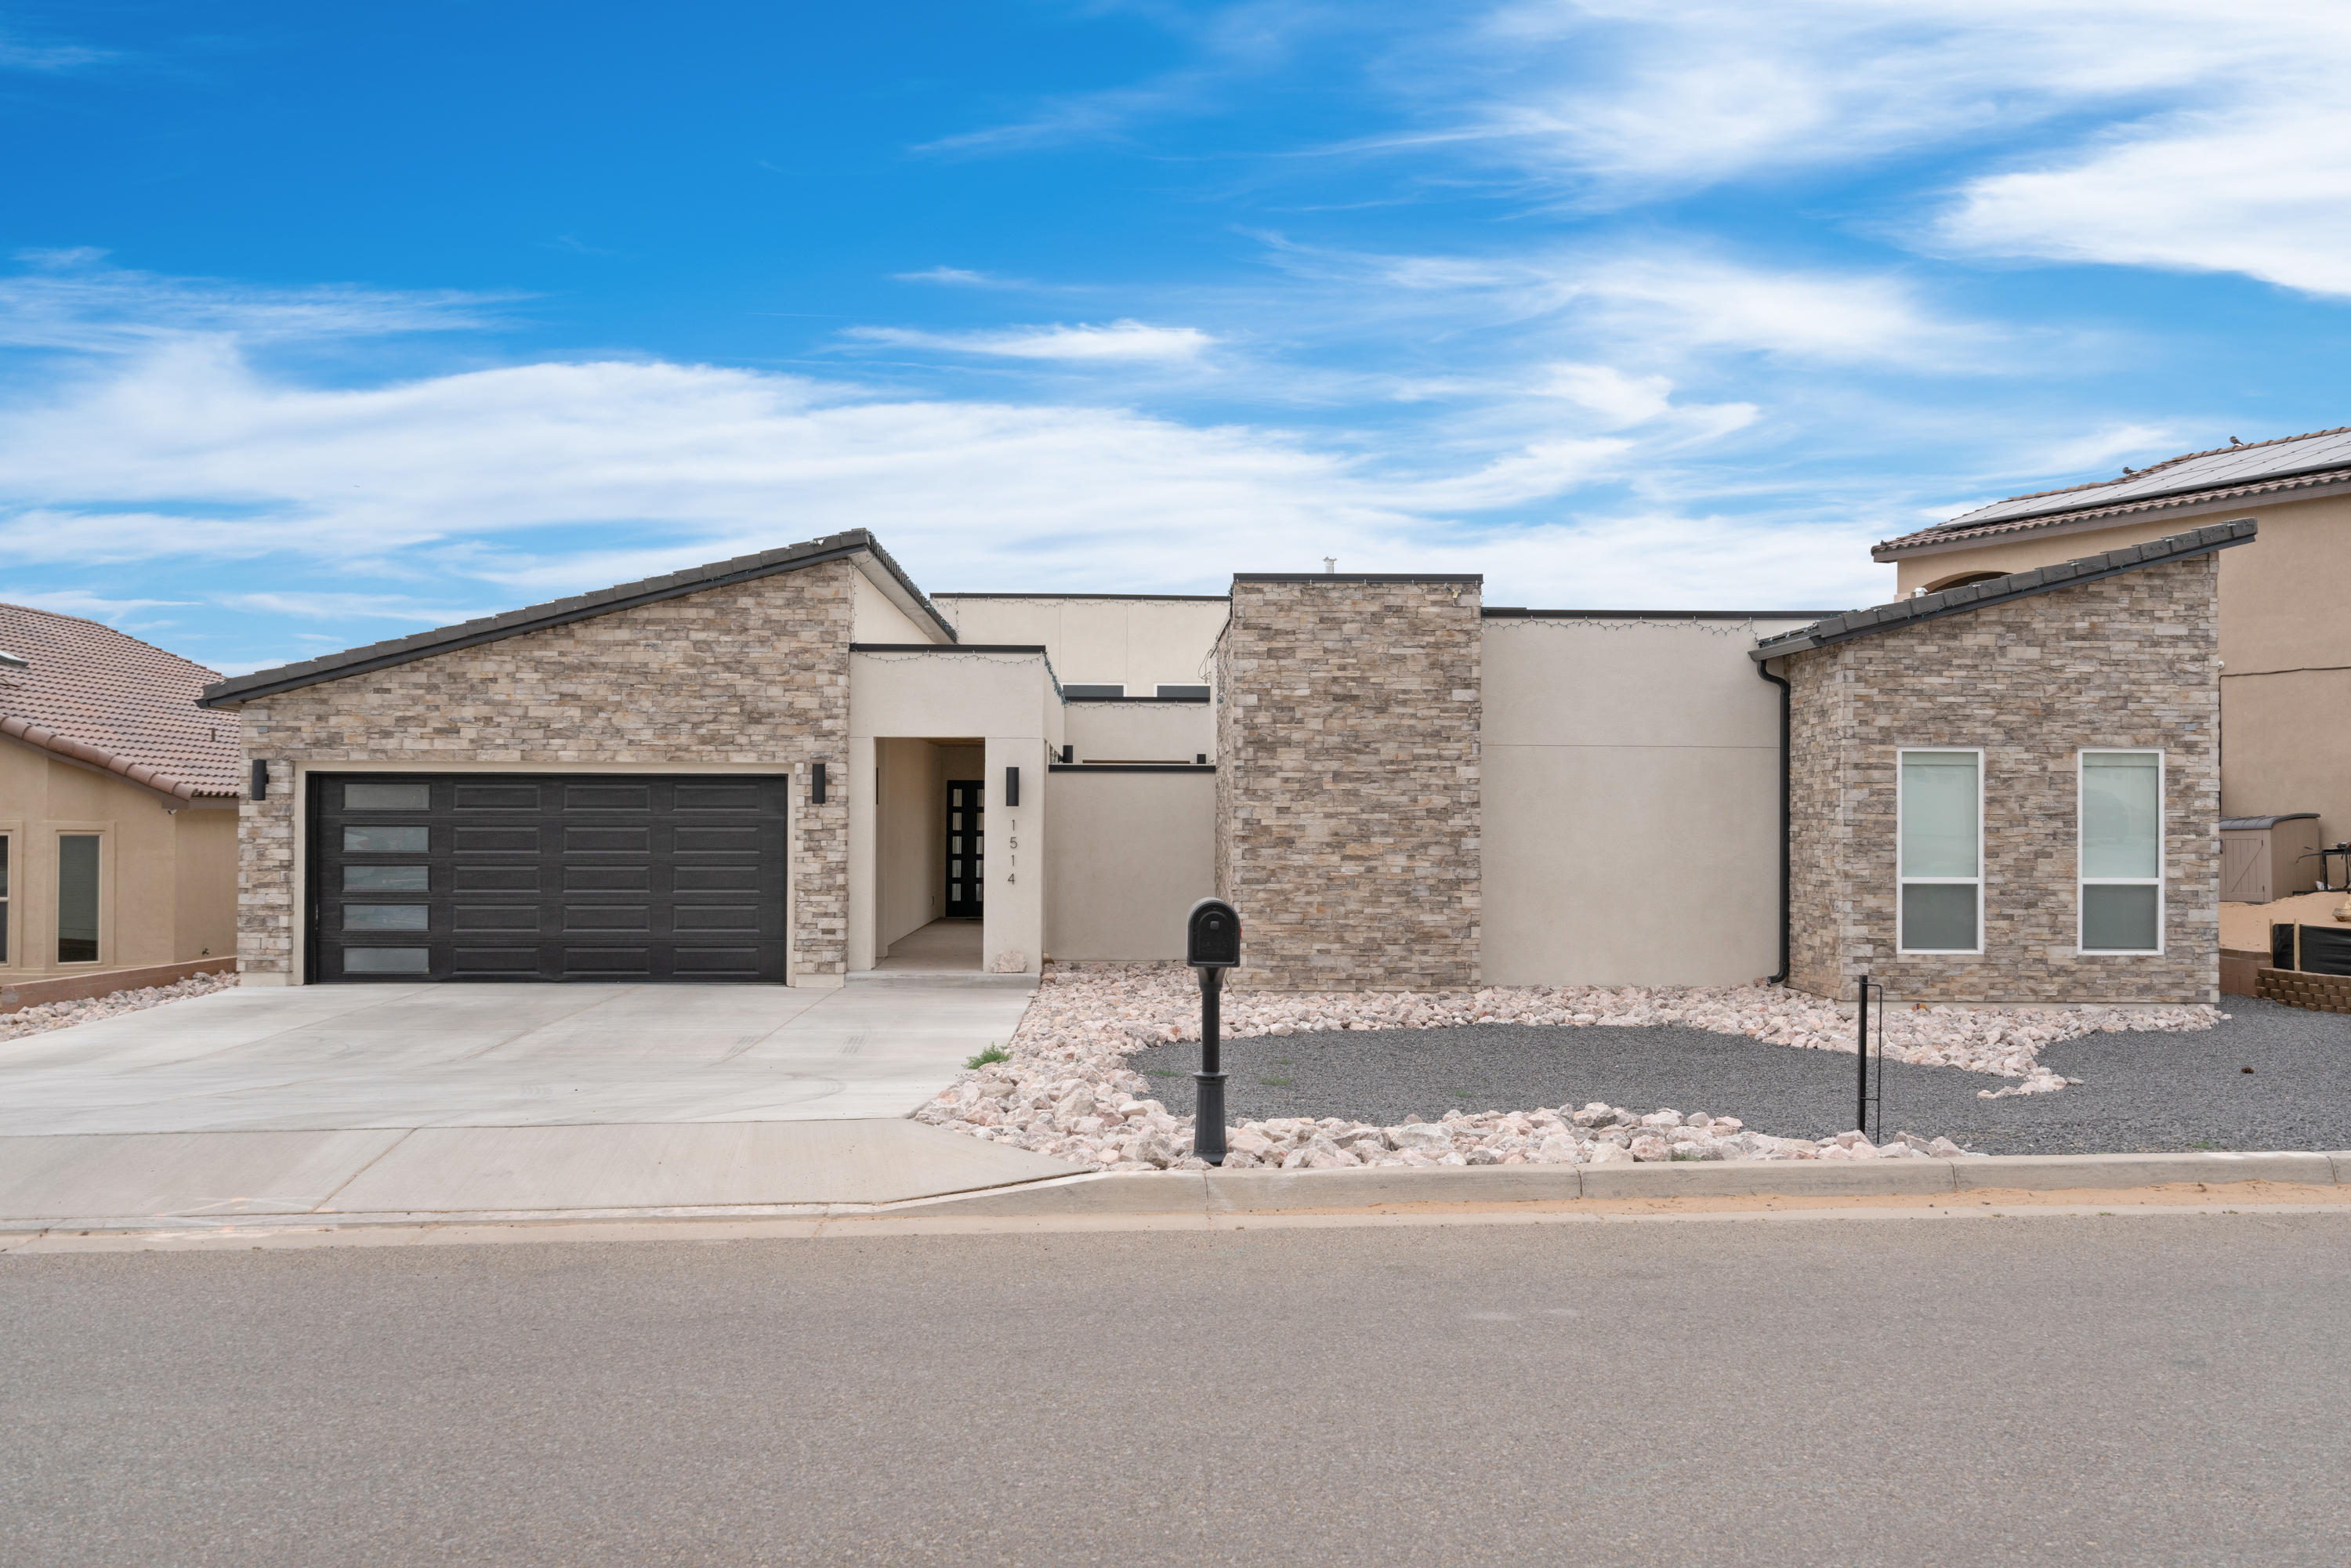 Take a walk through this beautiful modern master piece, This 4 bedroom 4 bathroom 4 car garage  has all that you need in a home. Beautiful custom home located in the highly desired Rio Rancho Estates. This great neighborhood is surrounded by custom homes and is conveniently located near shopping, rust medical center and great dinning! This gorgeous home features 3408 sqft with 4 bedrooms 3.5 baths,  formal dinning with a finished tandem 4 car garage. The open floor plan is second to none with a gourmet kitchen with a huge island with , custom cabinets, granite countertops, built in oven/microwave, all upgraded appliances makes this a great home to entertain. Large master suite with a large walk in closet and spa like bathroom leaves you with nothing to be desired.